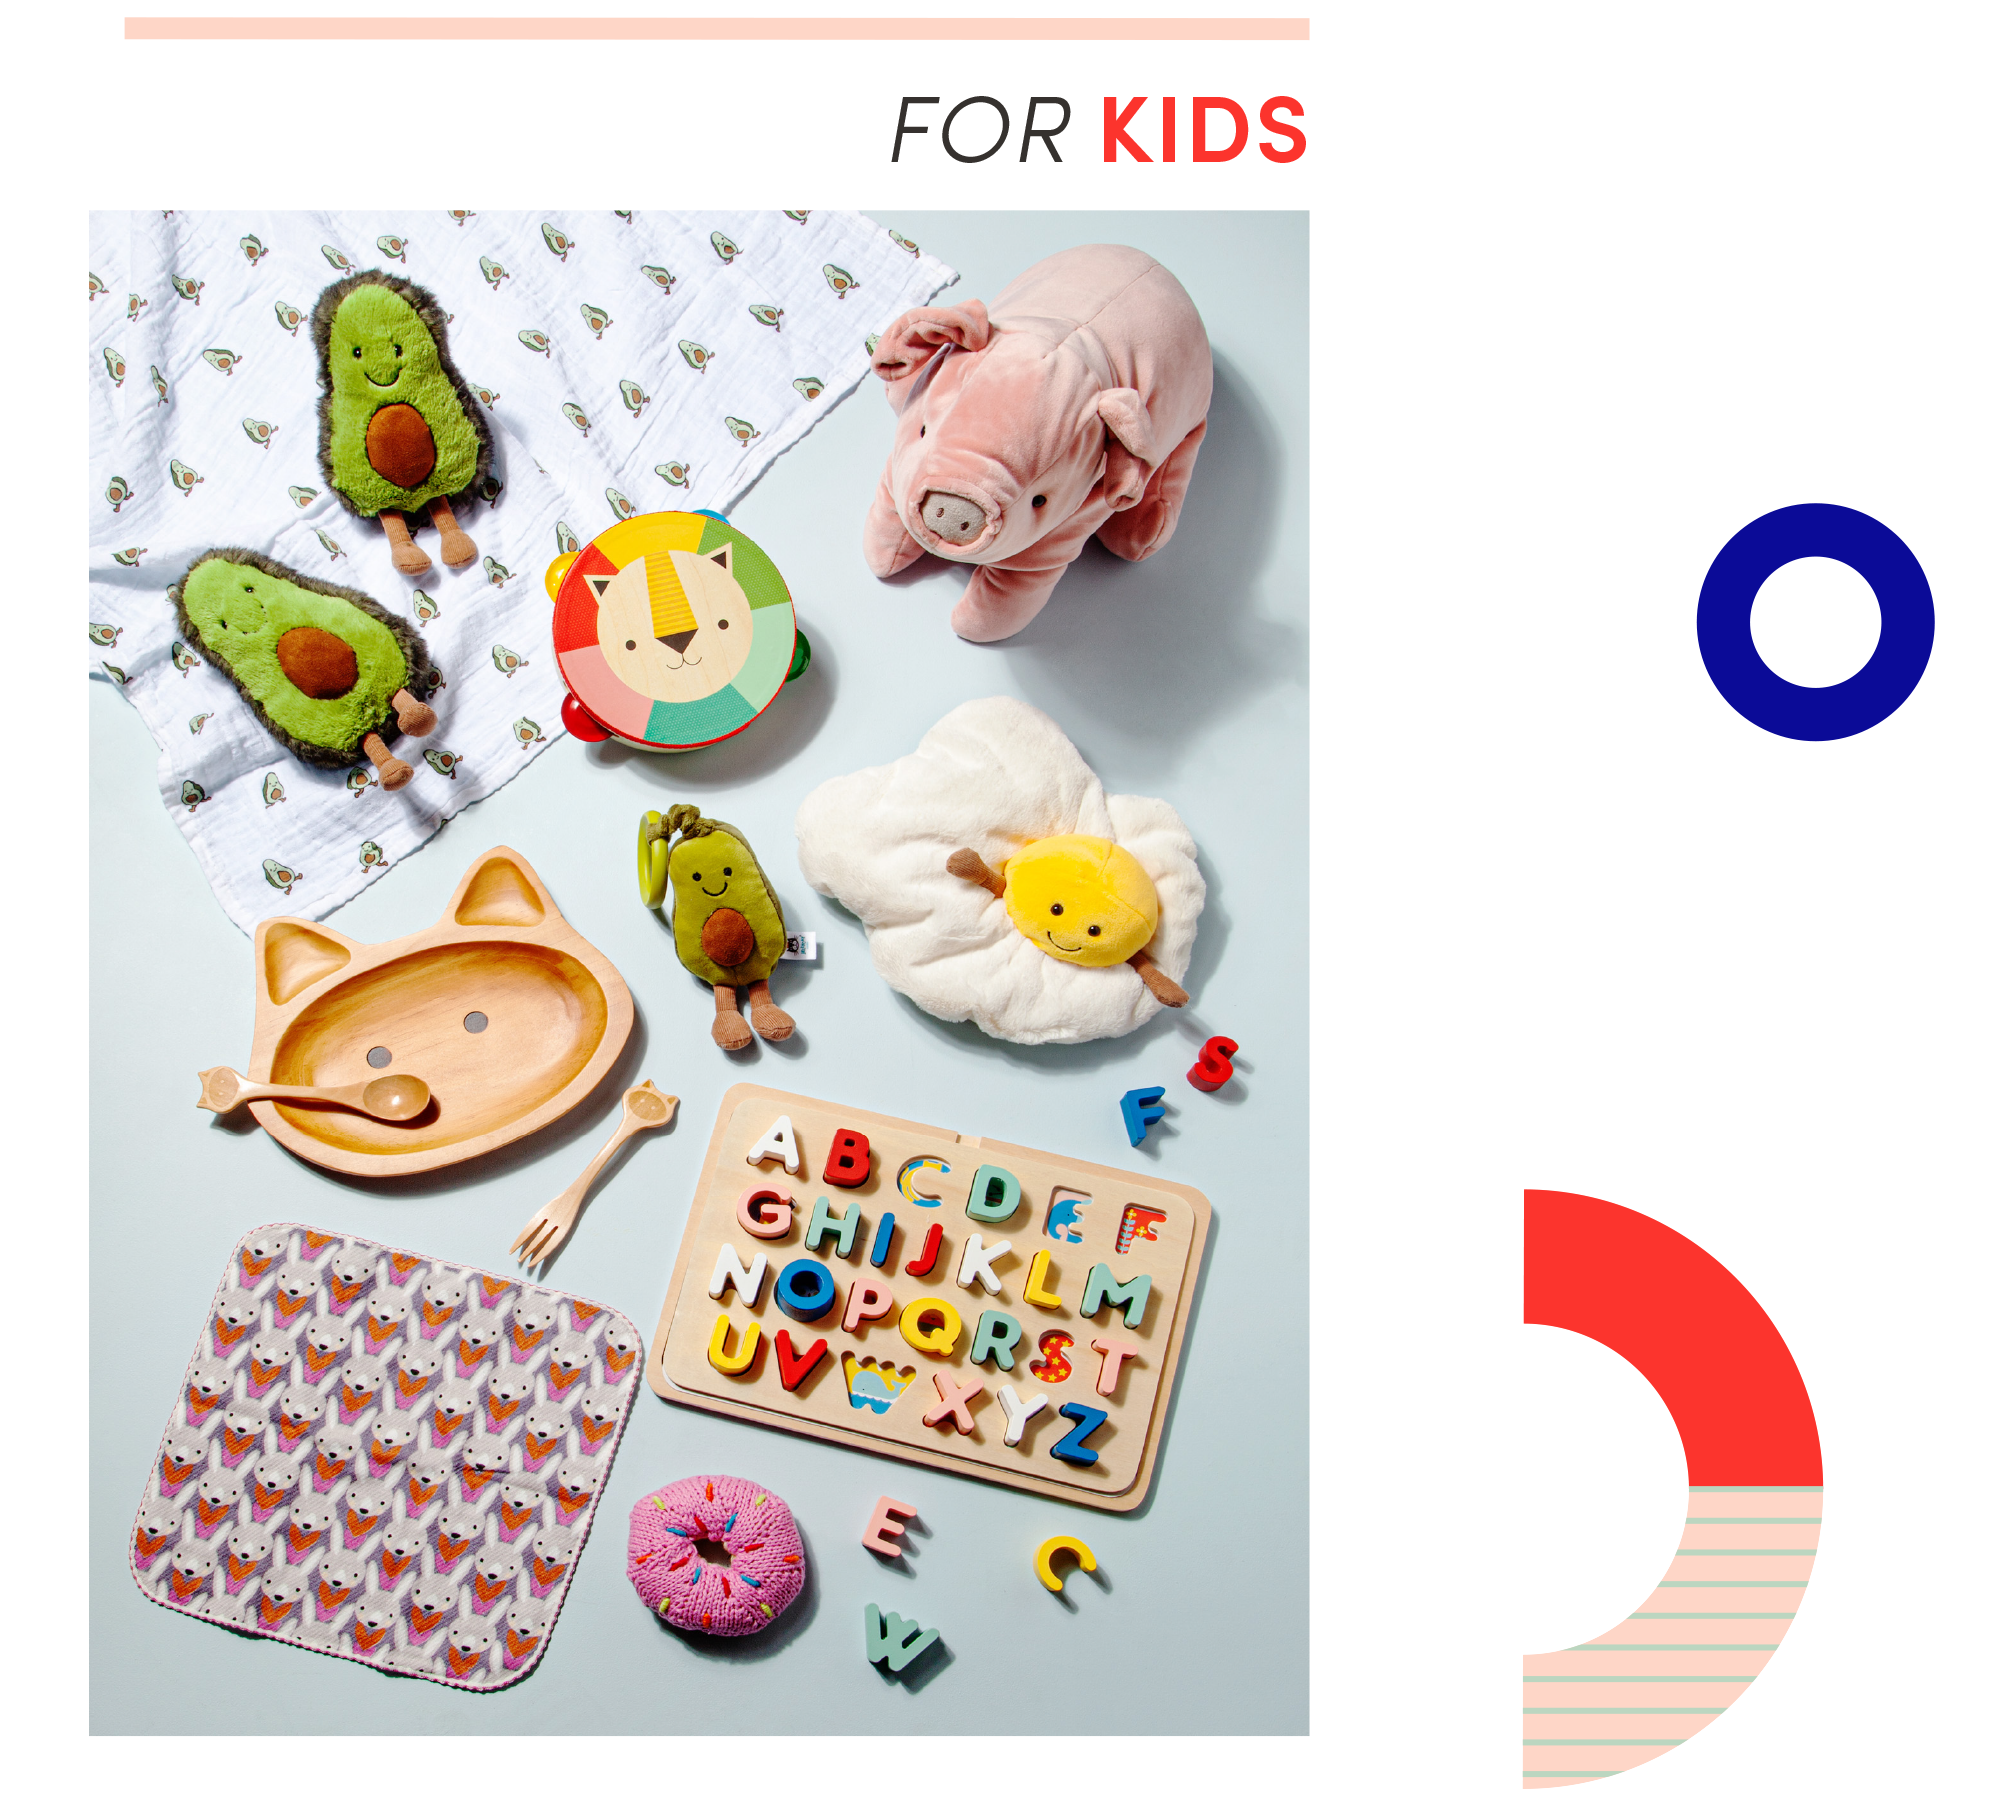 For kids gift guide section